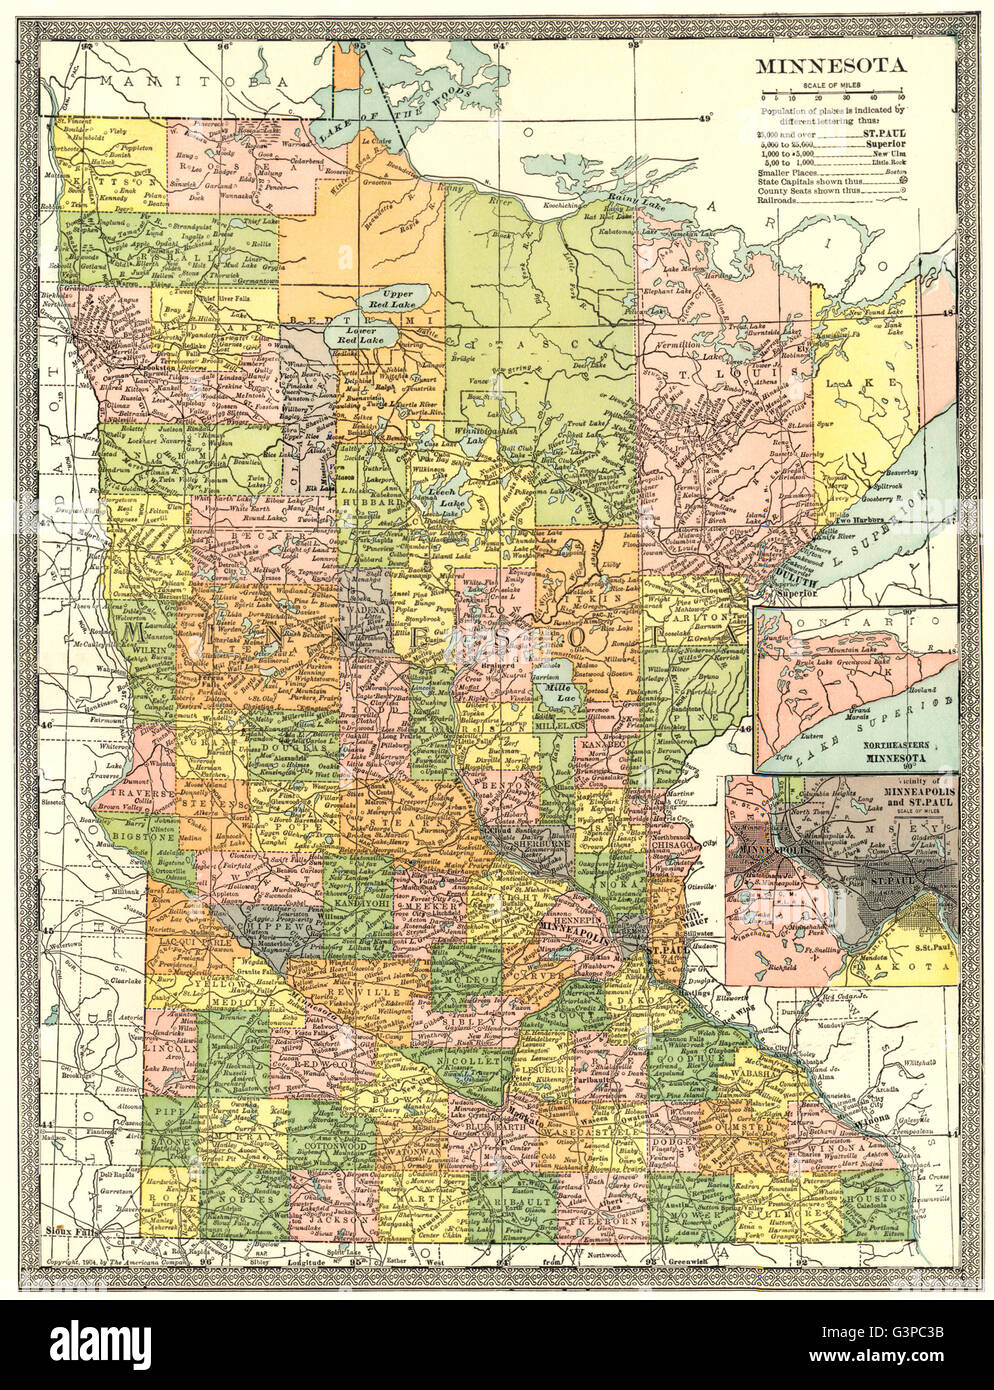 Minnesota State Map Counties Inset Minneapolis St Paul Environs